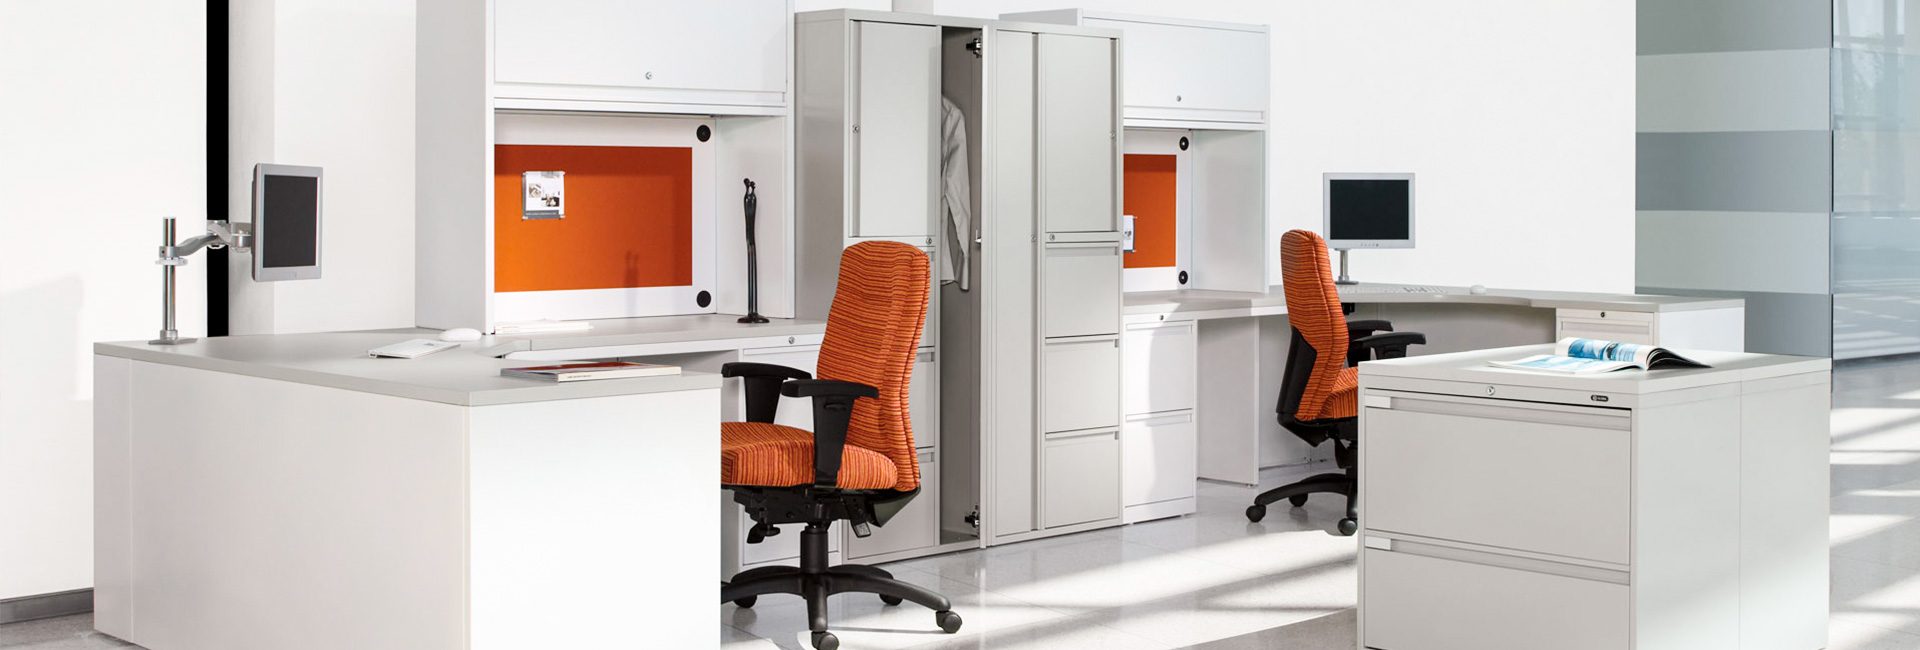 Metal Office Lateral Filing Storage Cabinet